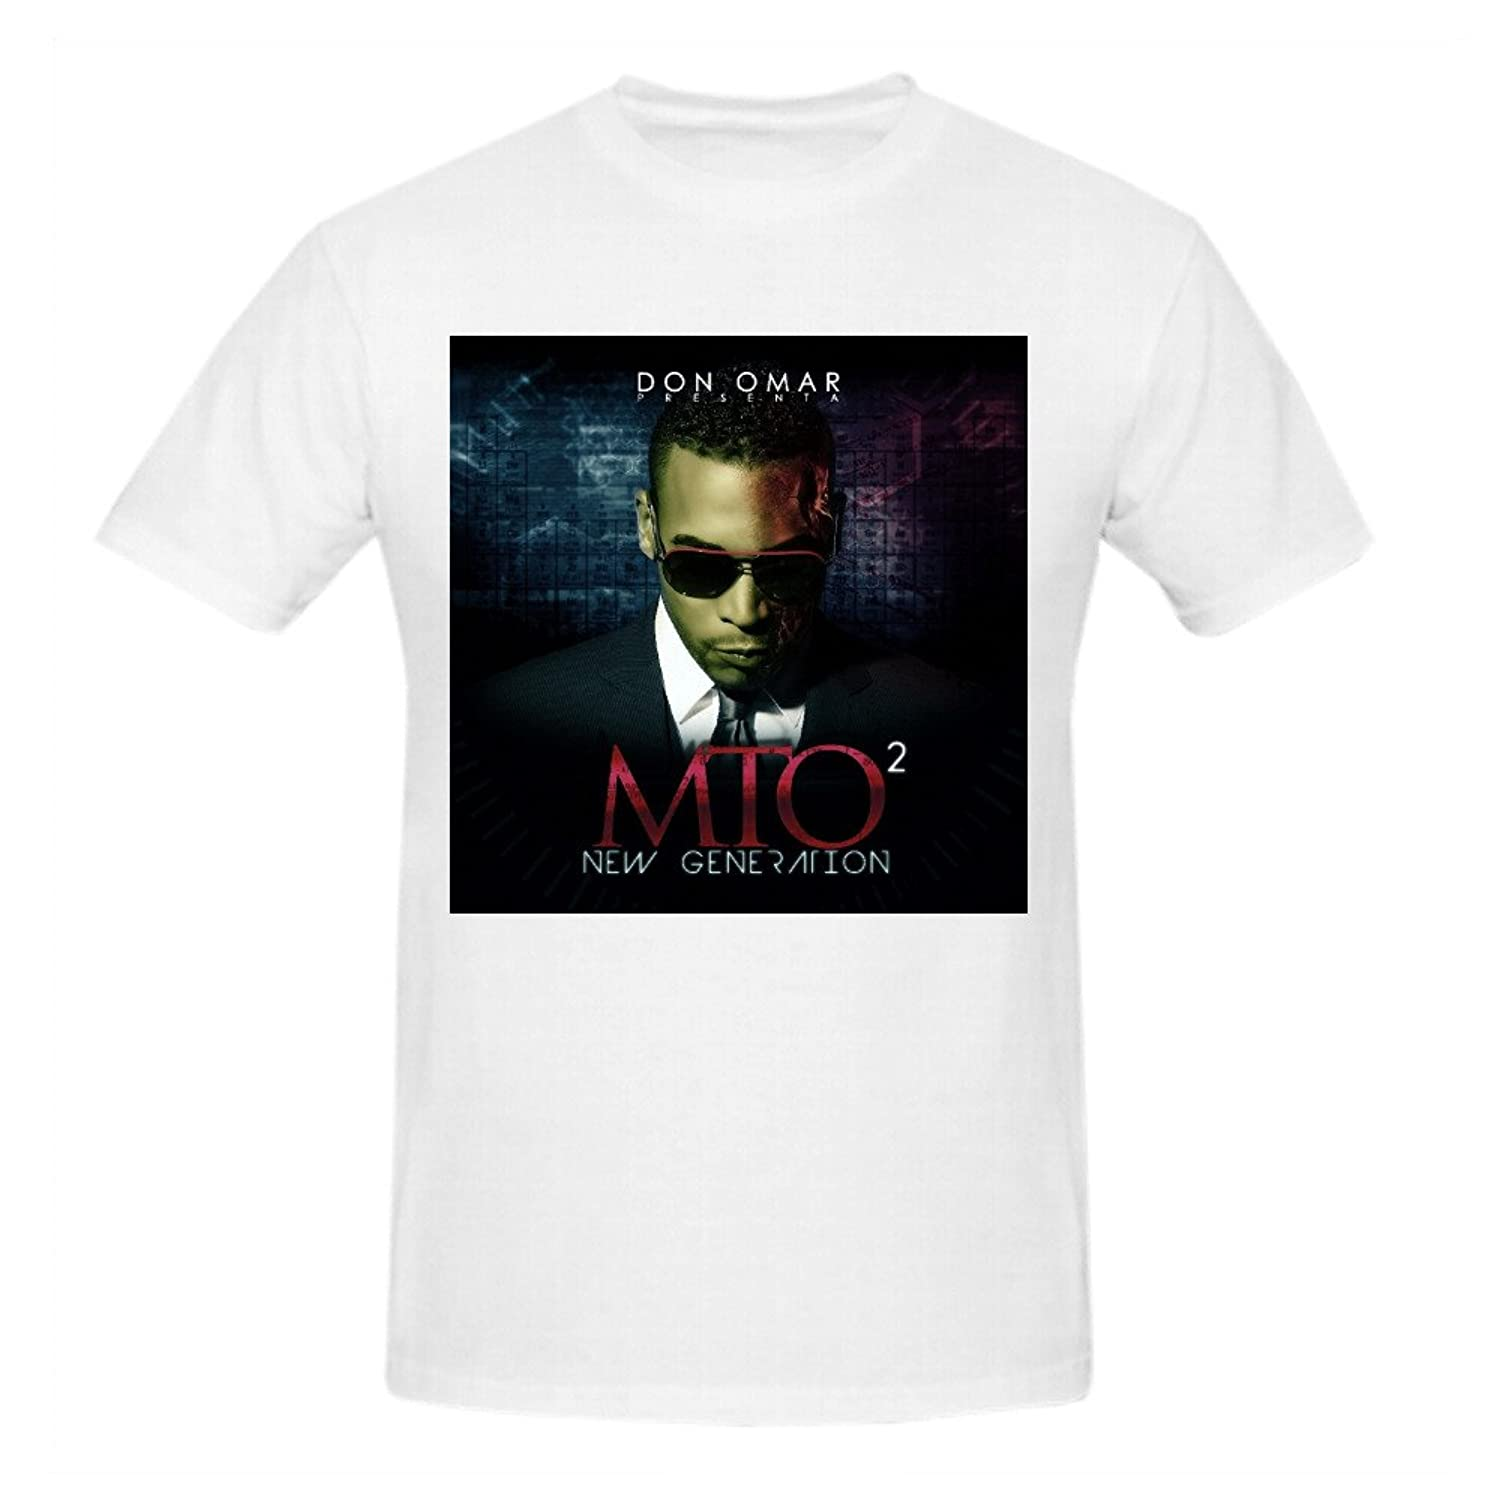 Don Omar Mto New Generation Funny Tee Shirts For Men